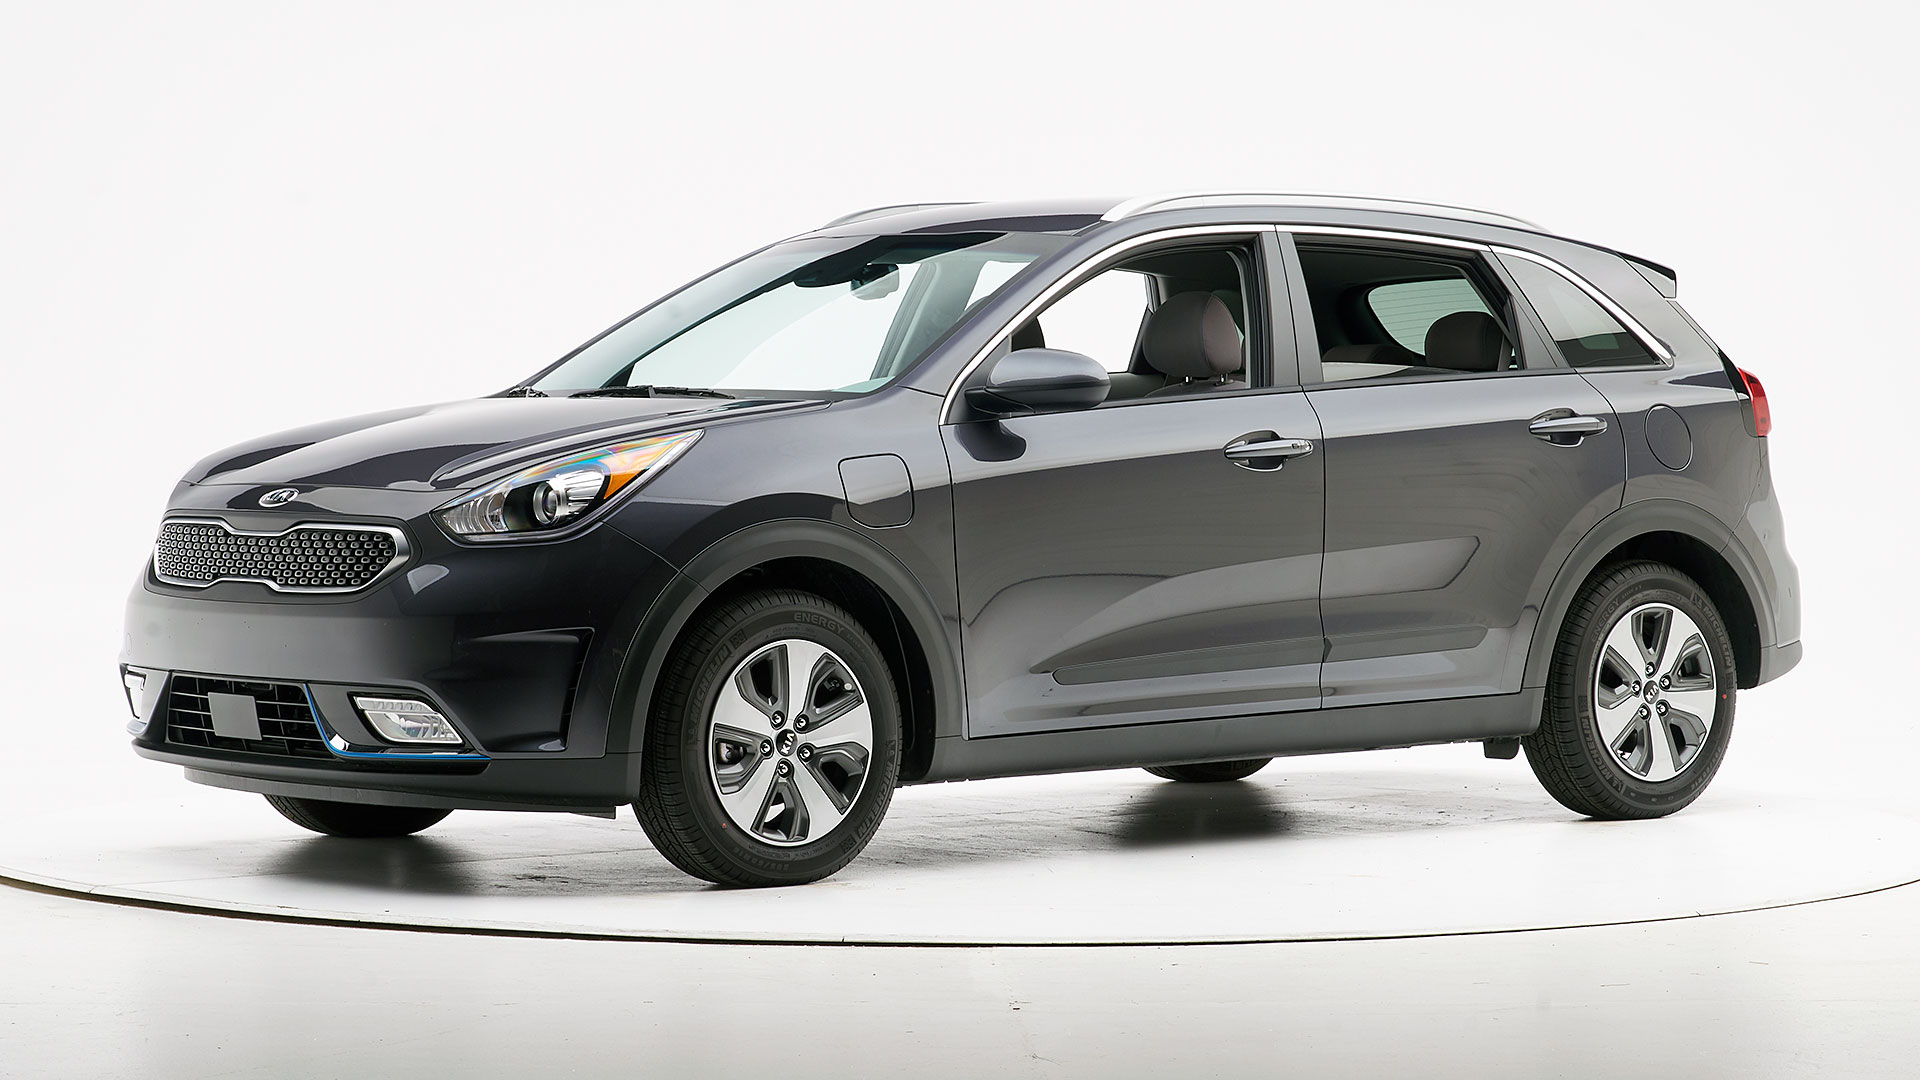 2019 Kia Niro Plug-In Hybrid 4-door wagon